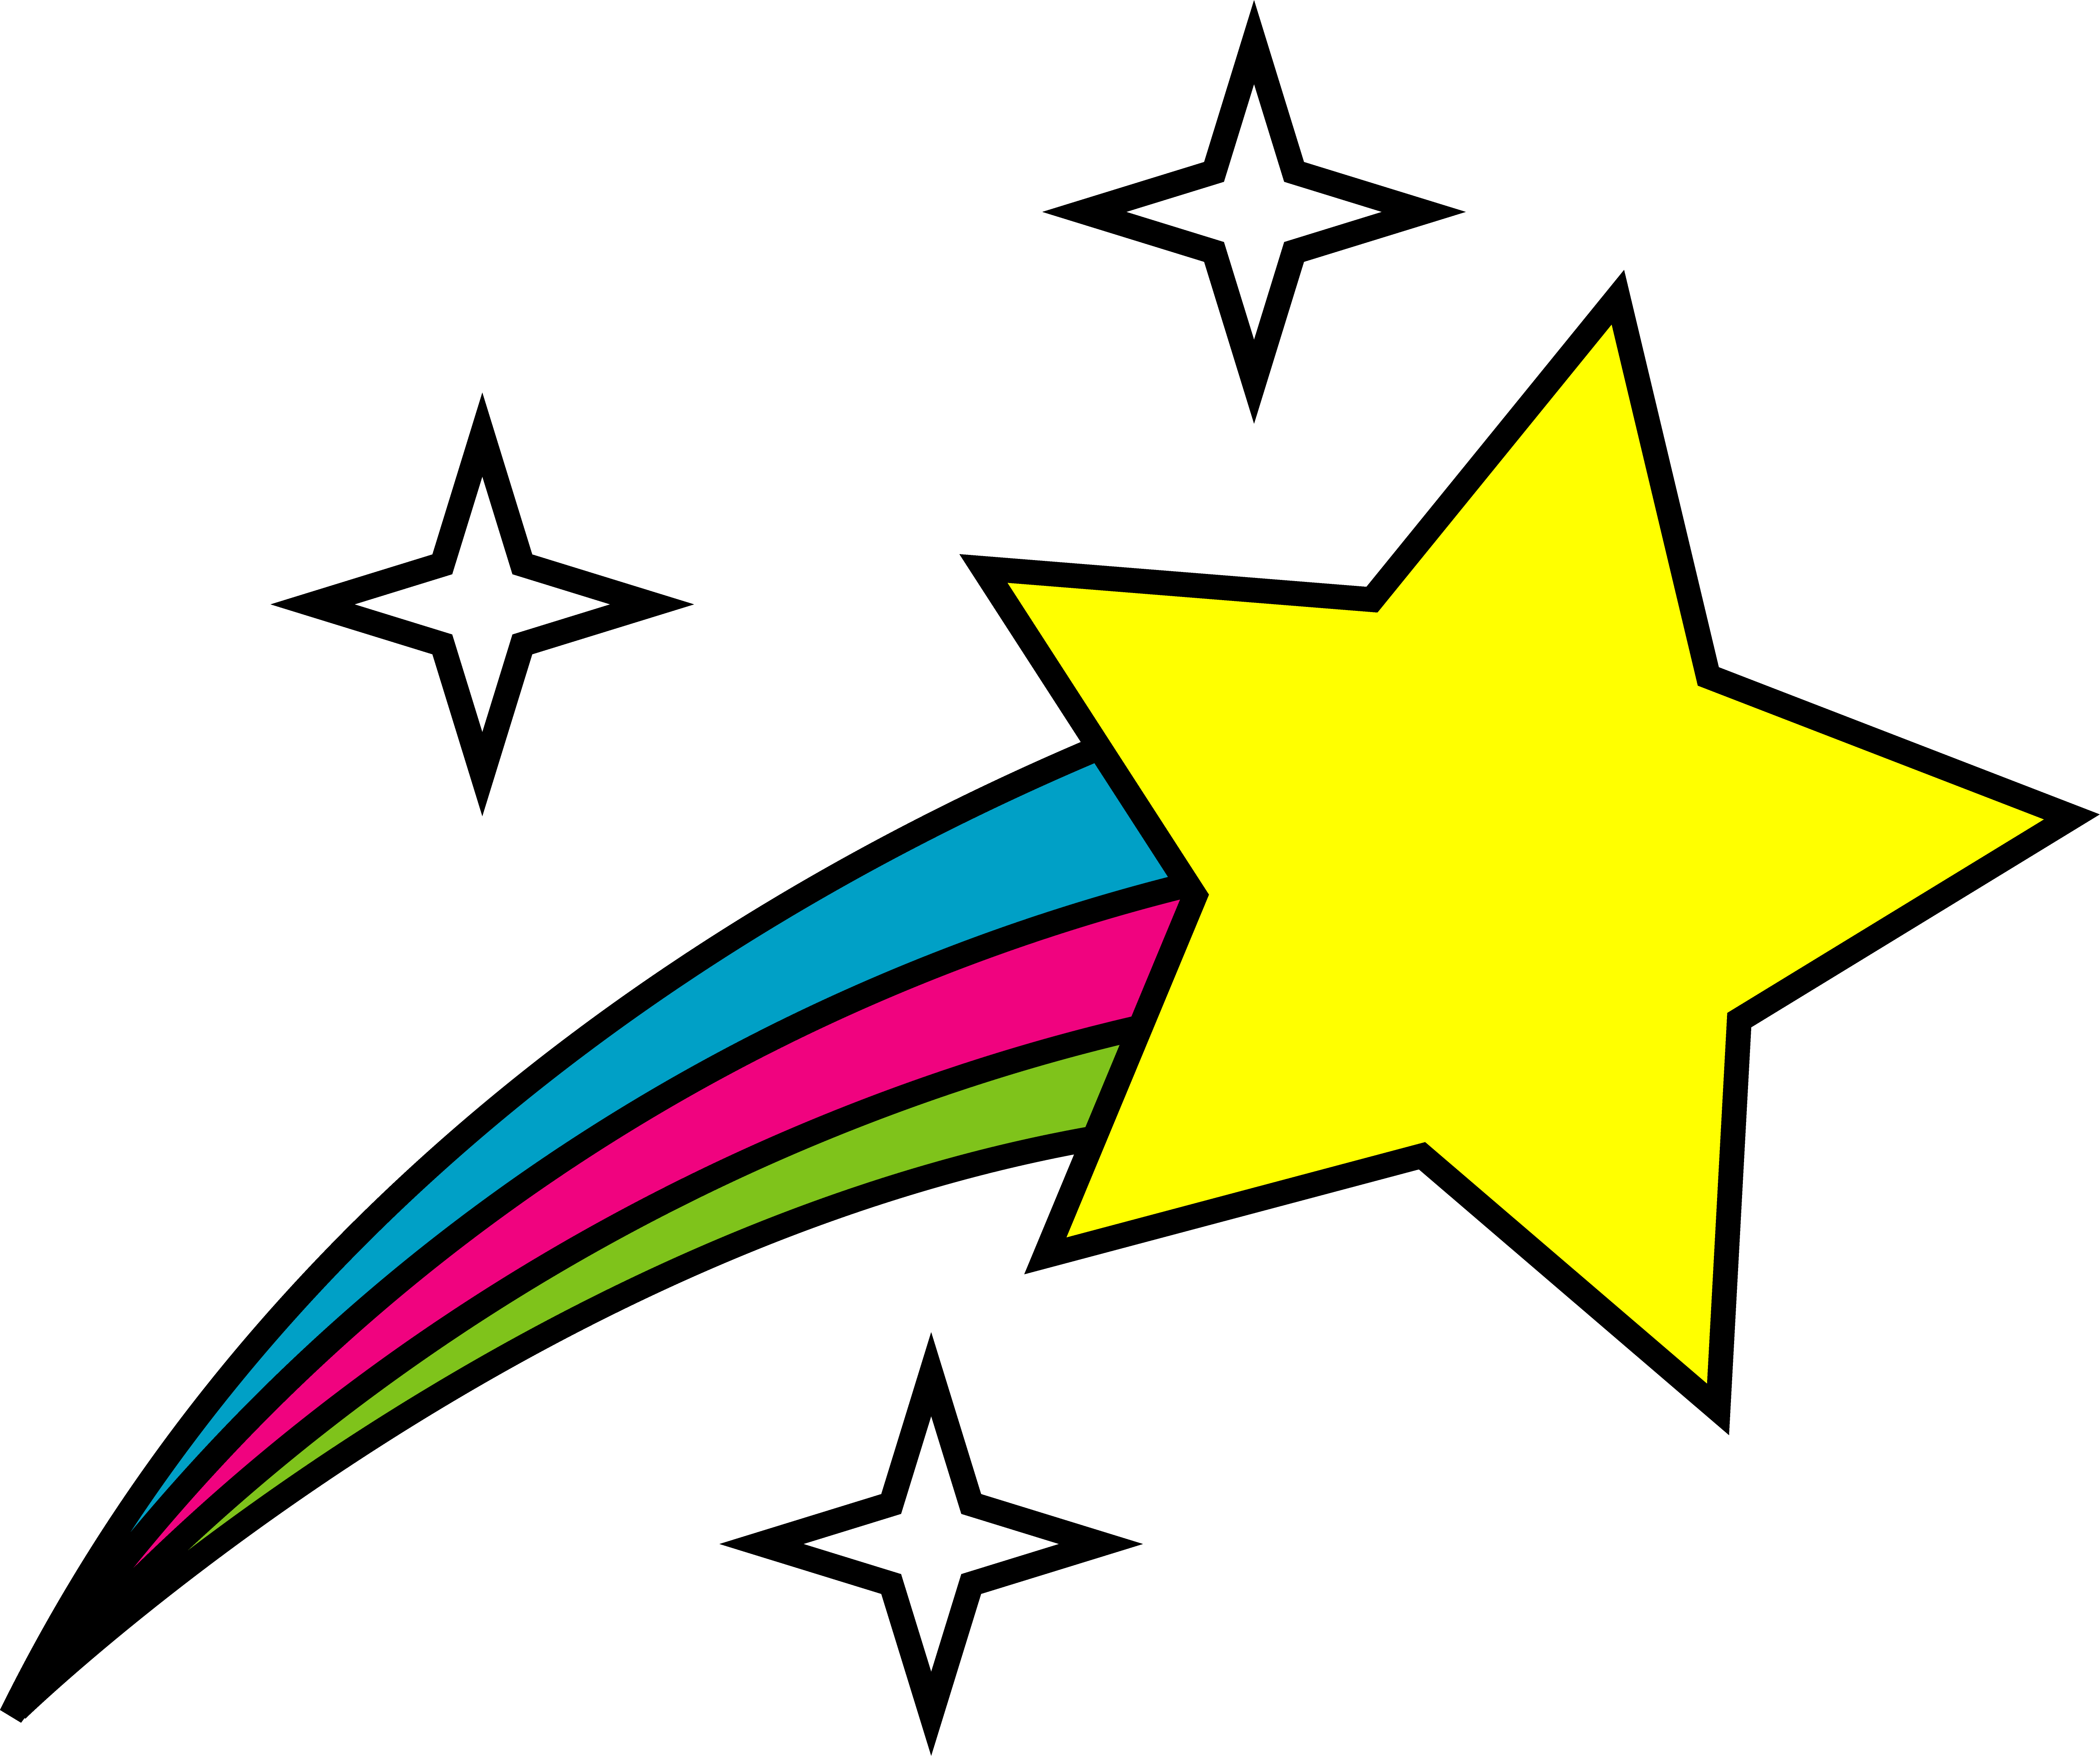 Outer Space Shooting Star - Free Clip Art